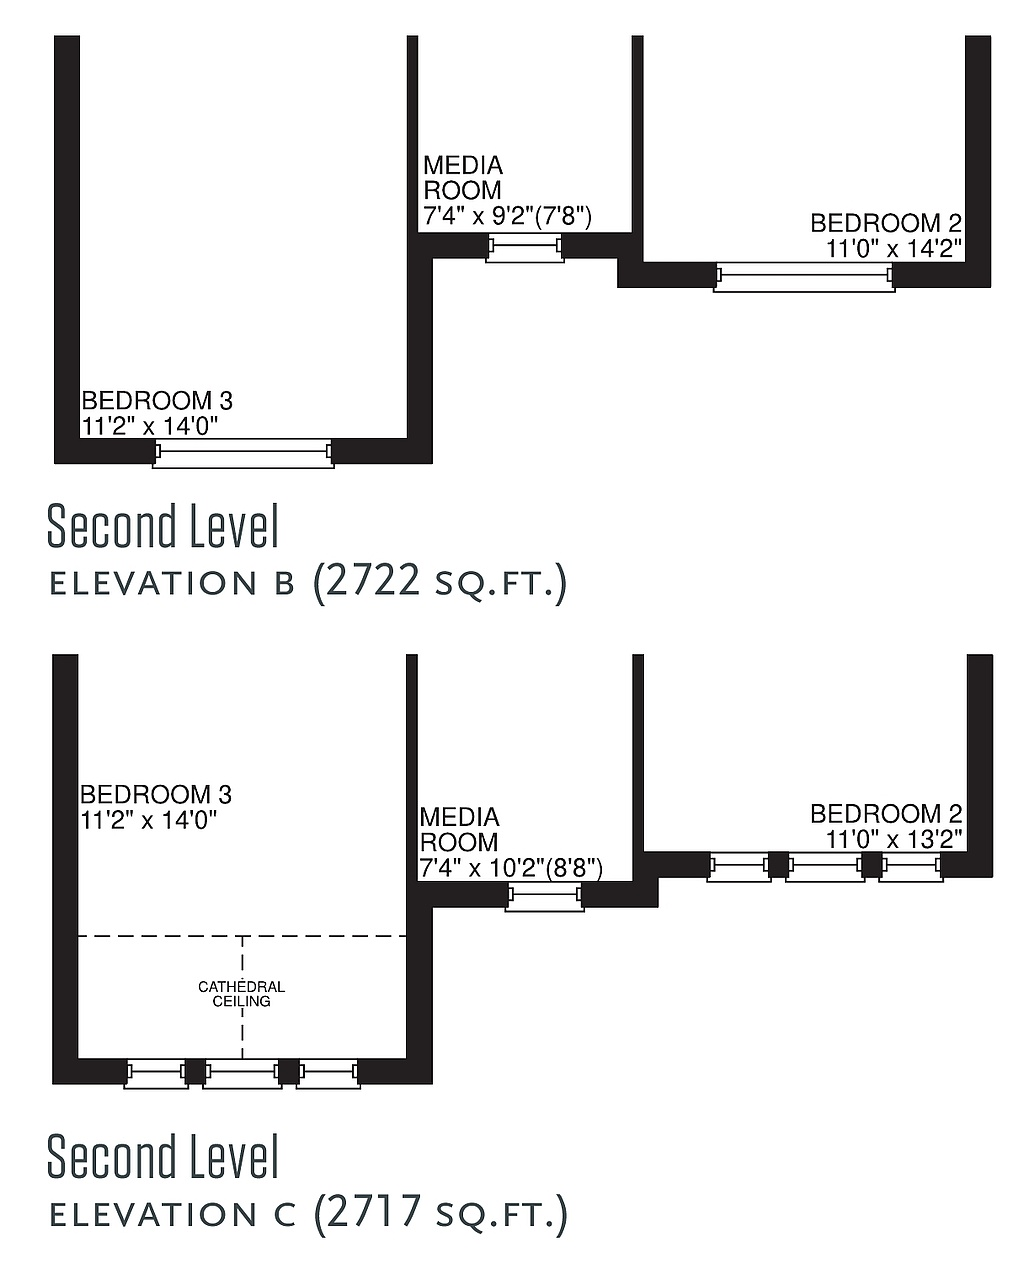 Limited New Release Of 38' Detached Homes With Walkout